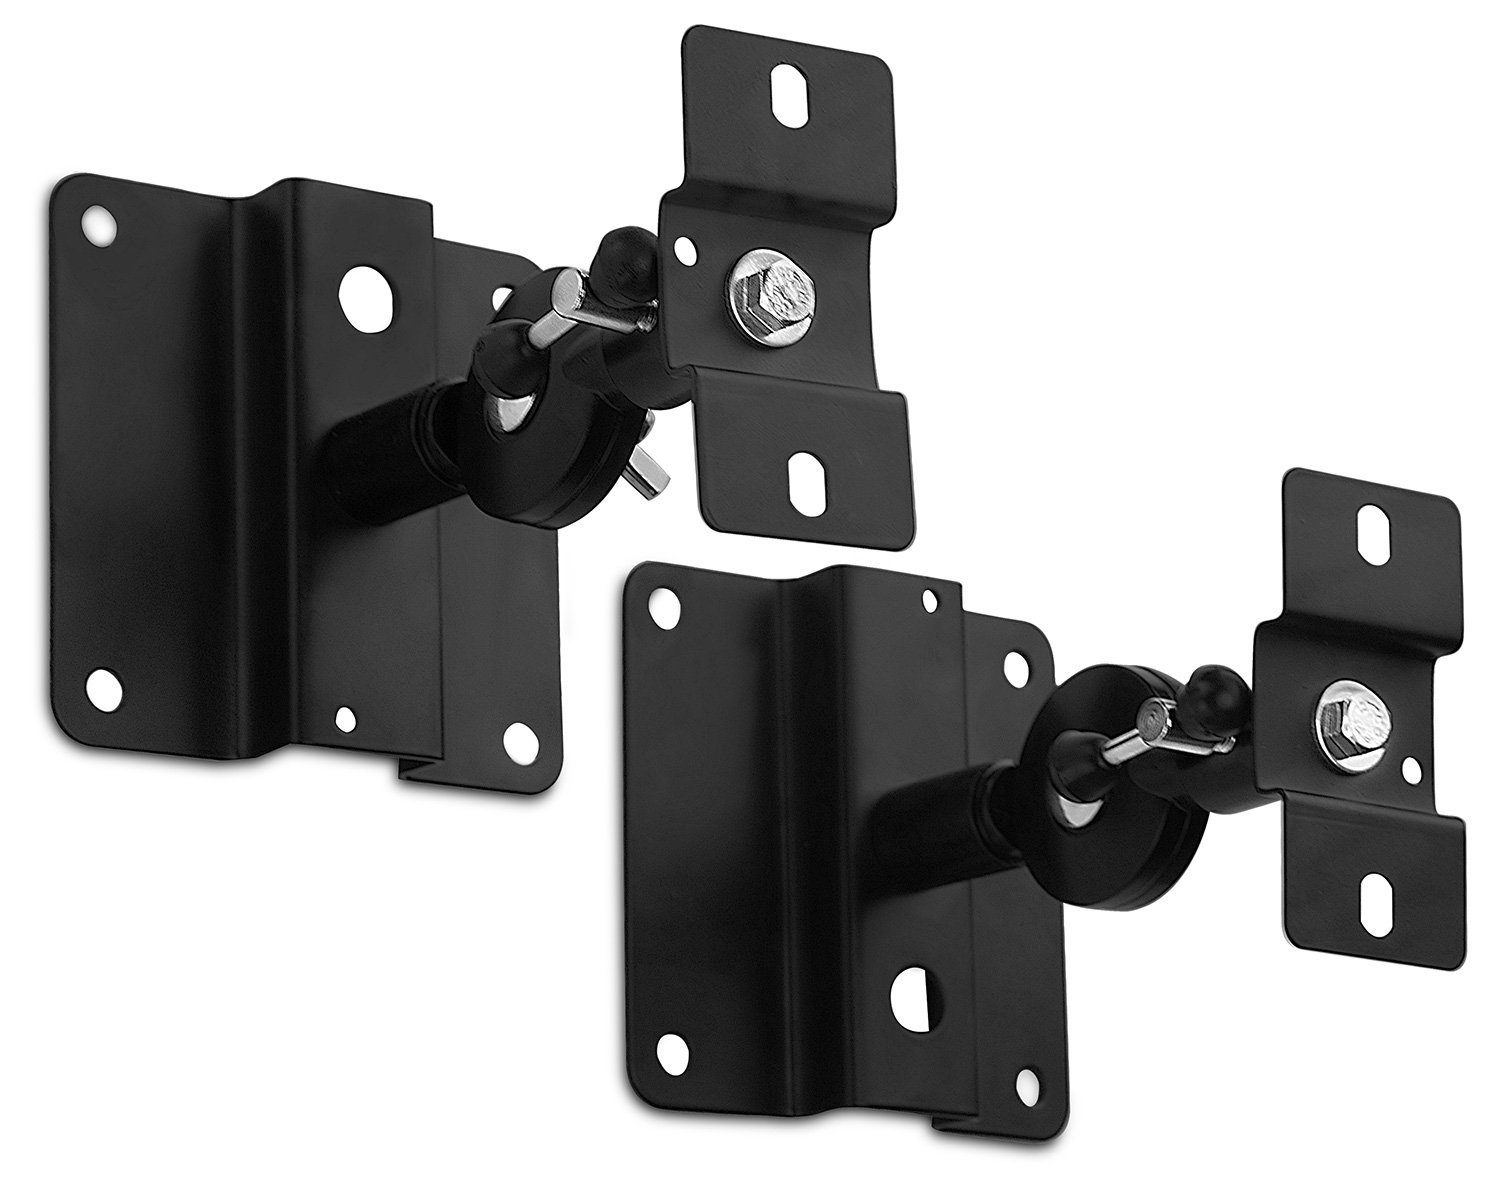 Mount-It! Speaker Mount For Wall and Ceiling, Low Profile Heavy Duty, Anti-Theft, Universal For Channel Surround Sound and Satellite Speakers, Black, 2 Mounts by Mount-It!